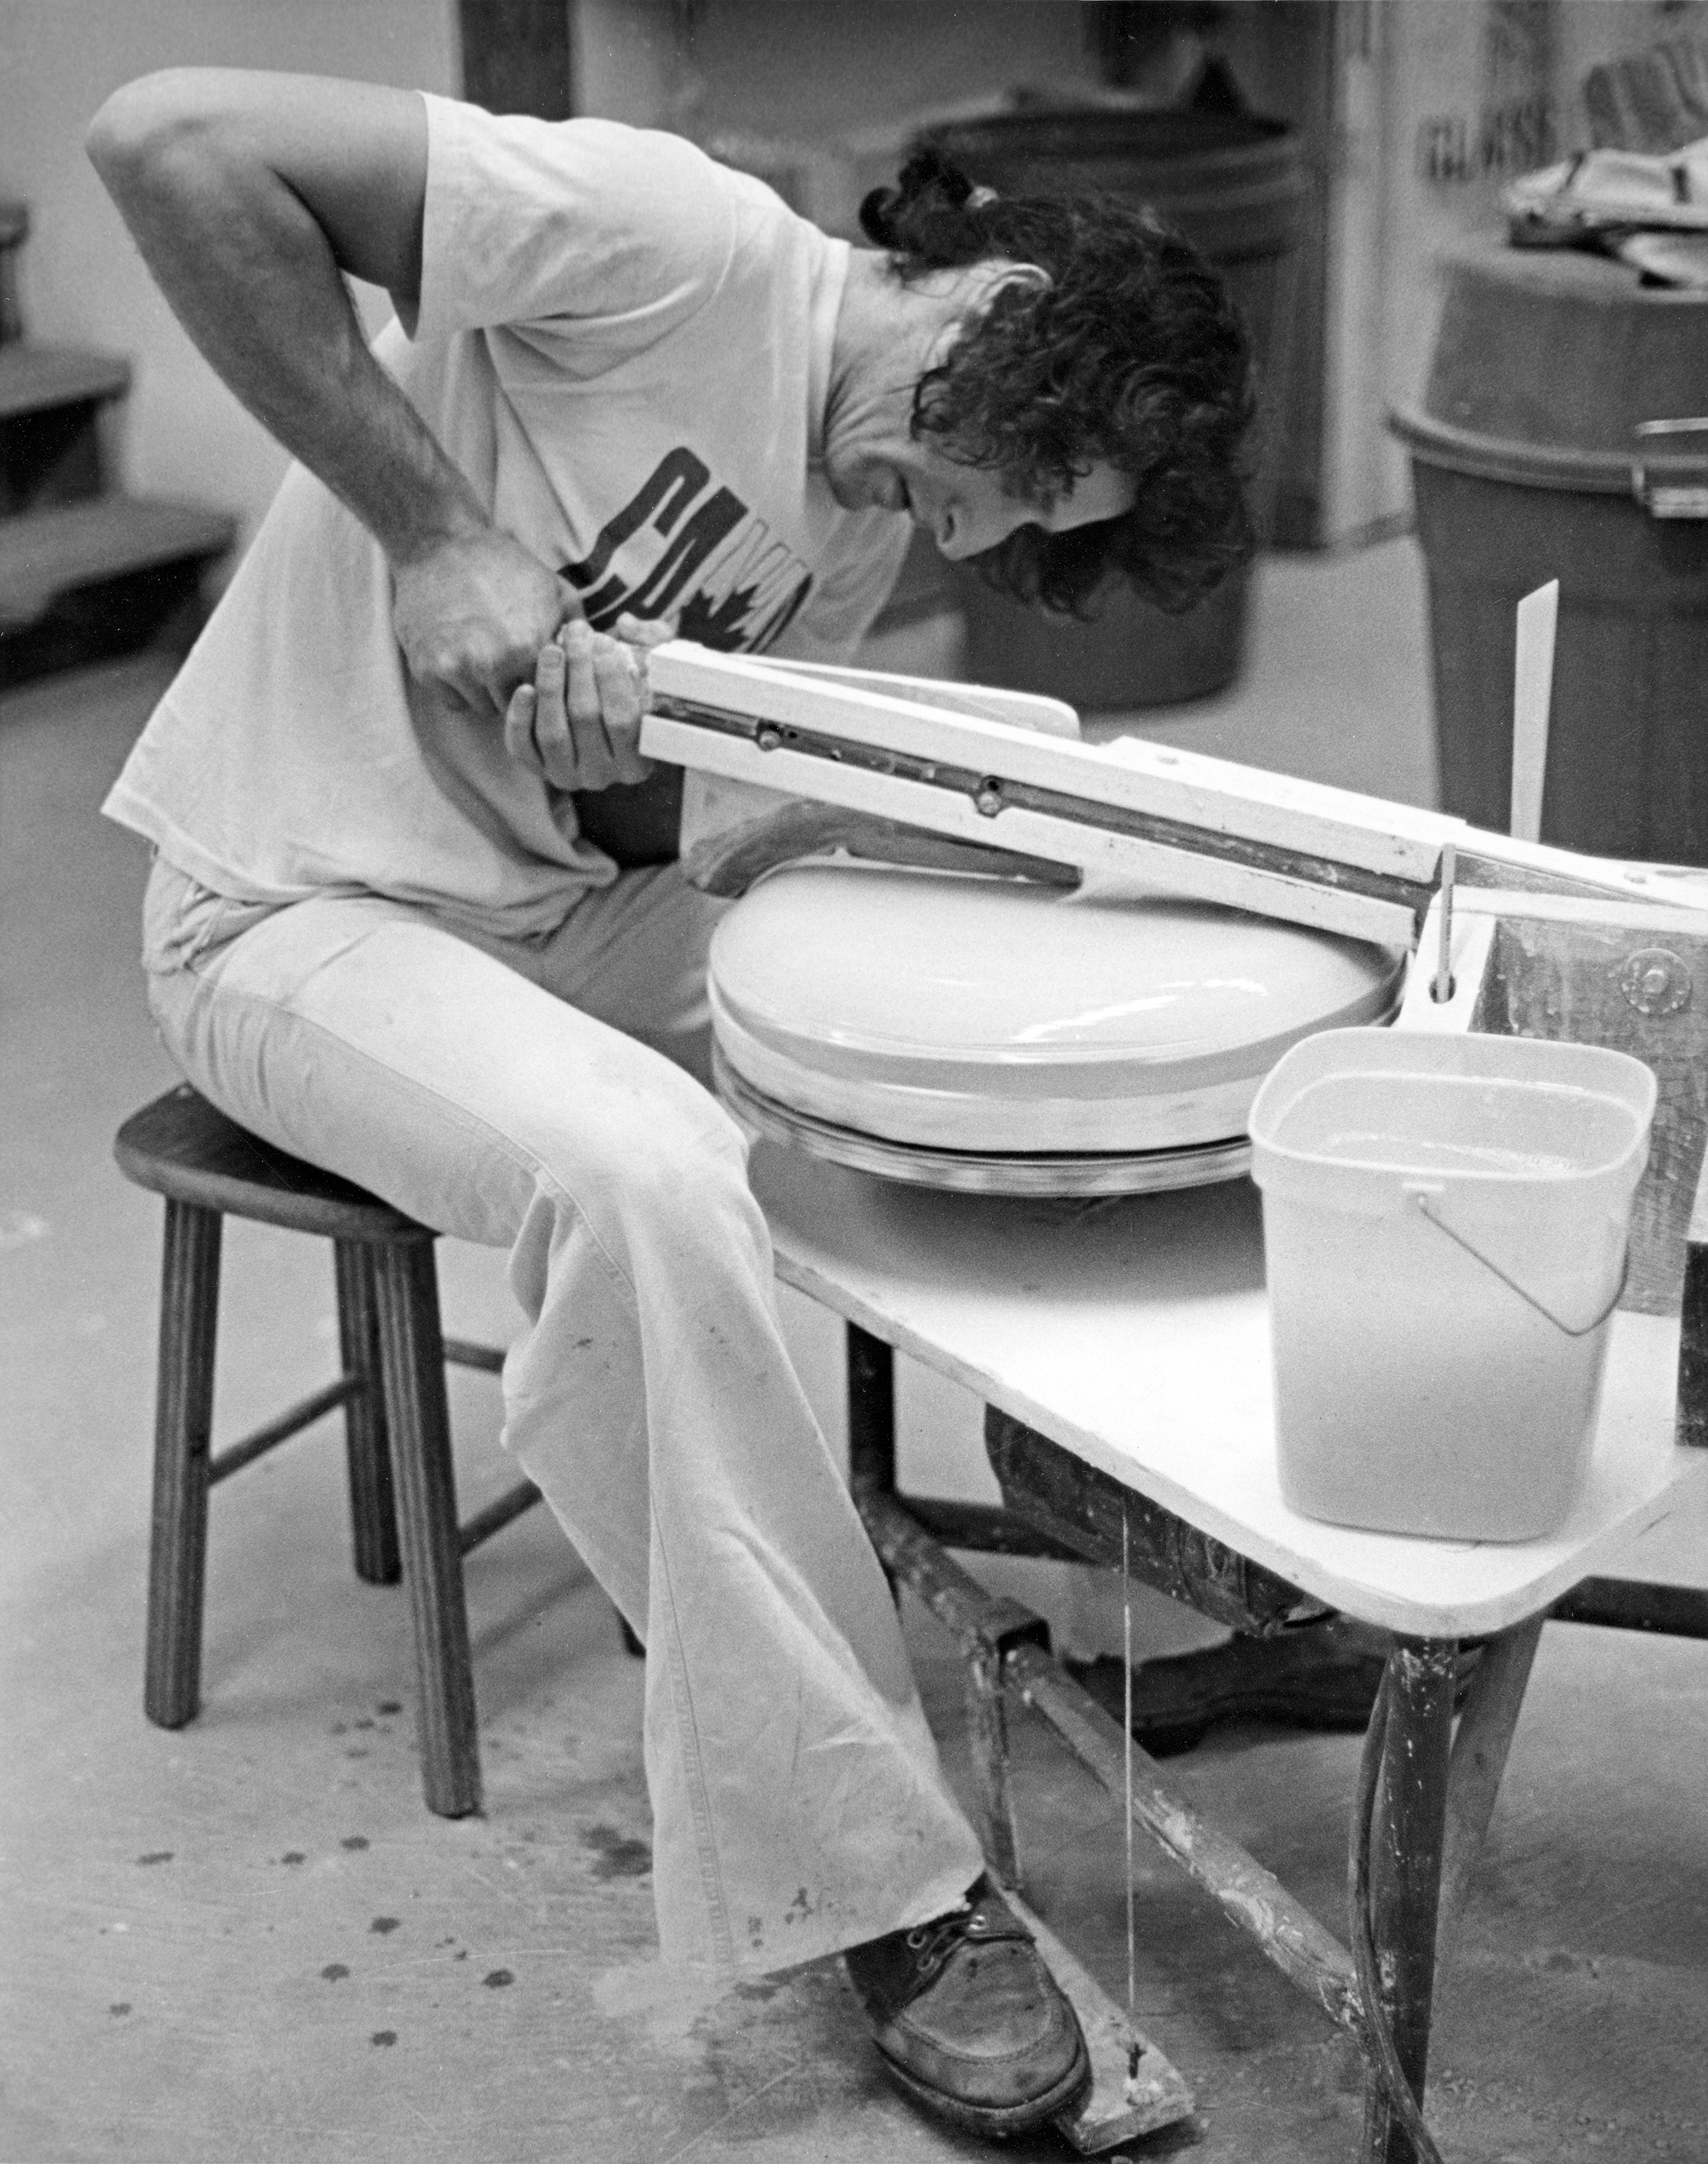 Leonard Skuro jiggering a plate in the ceramics studio, Santa Monica, CA, c. 1976-1977